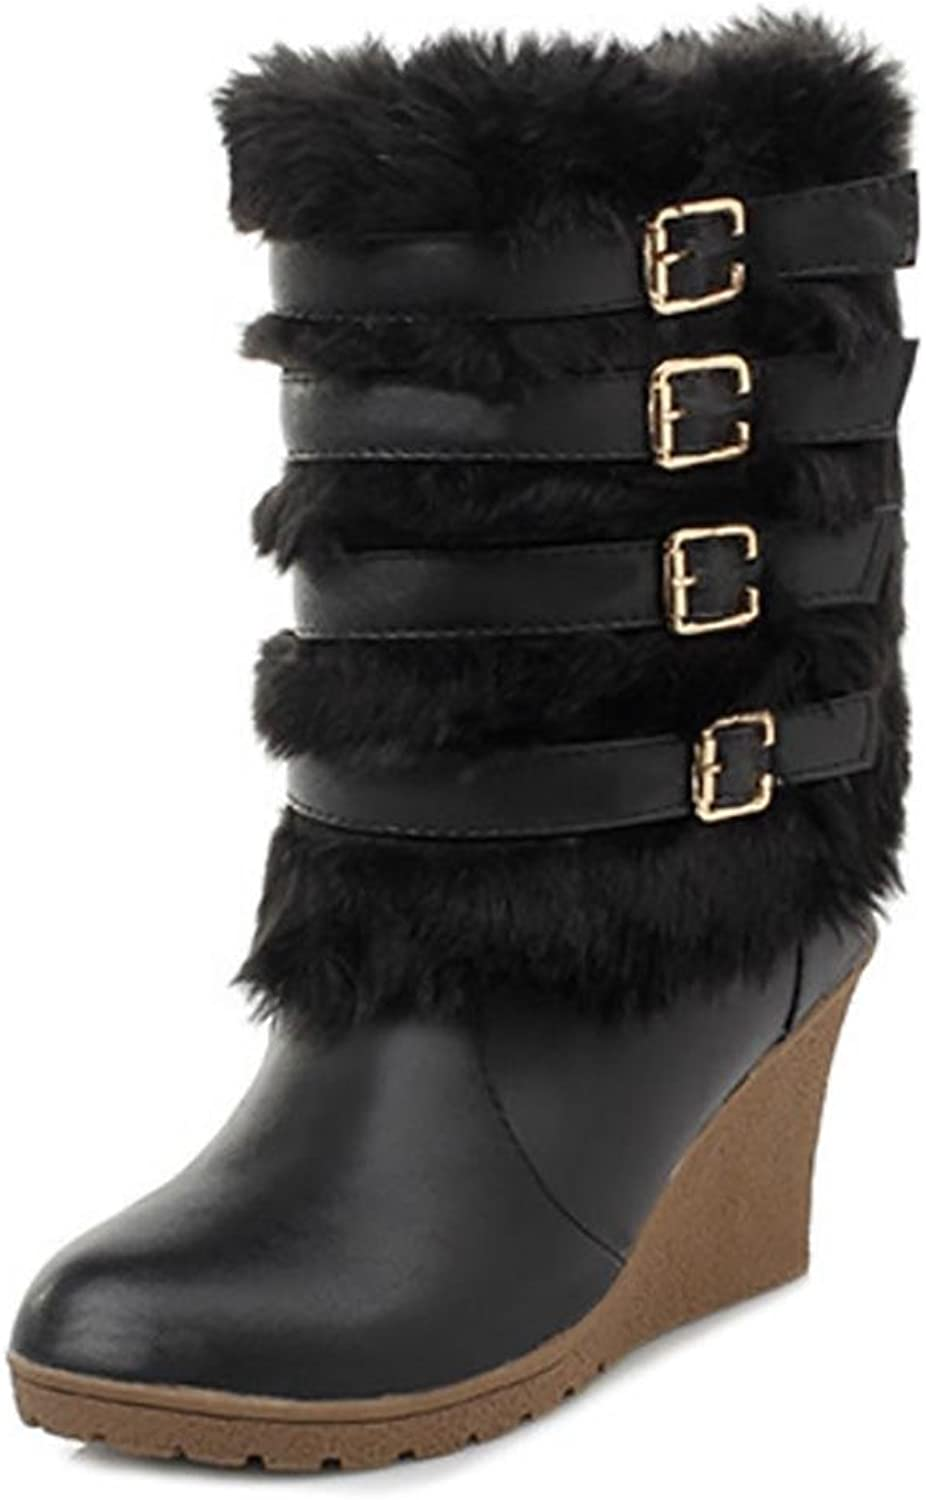 SHANGXIAN Ladies Long Fur Covered Rain Fur Lined Winter Warm Tall Snow Boots